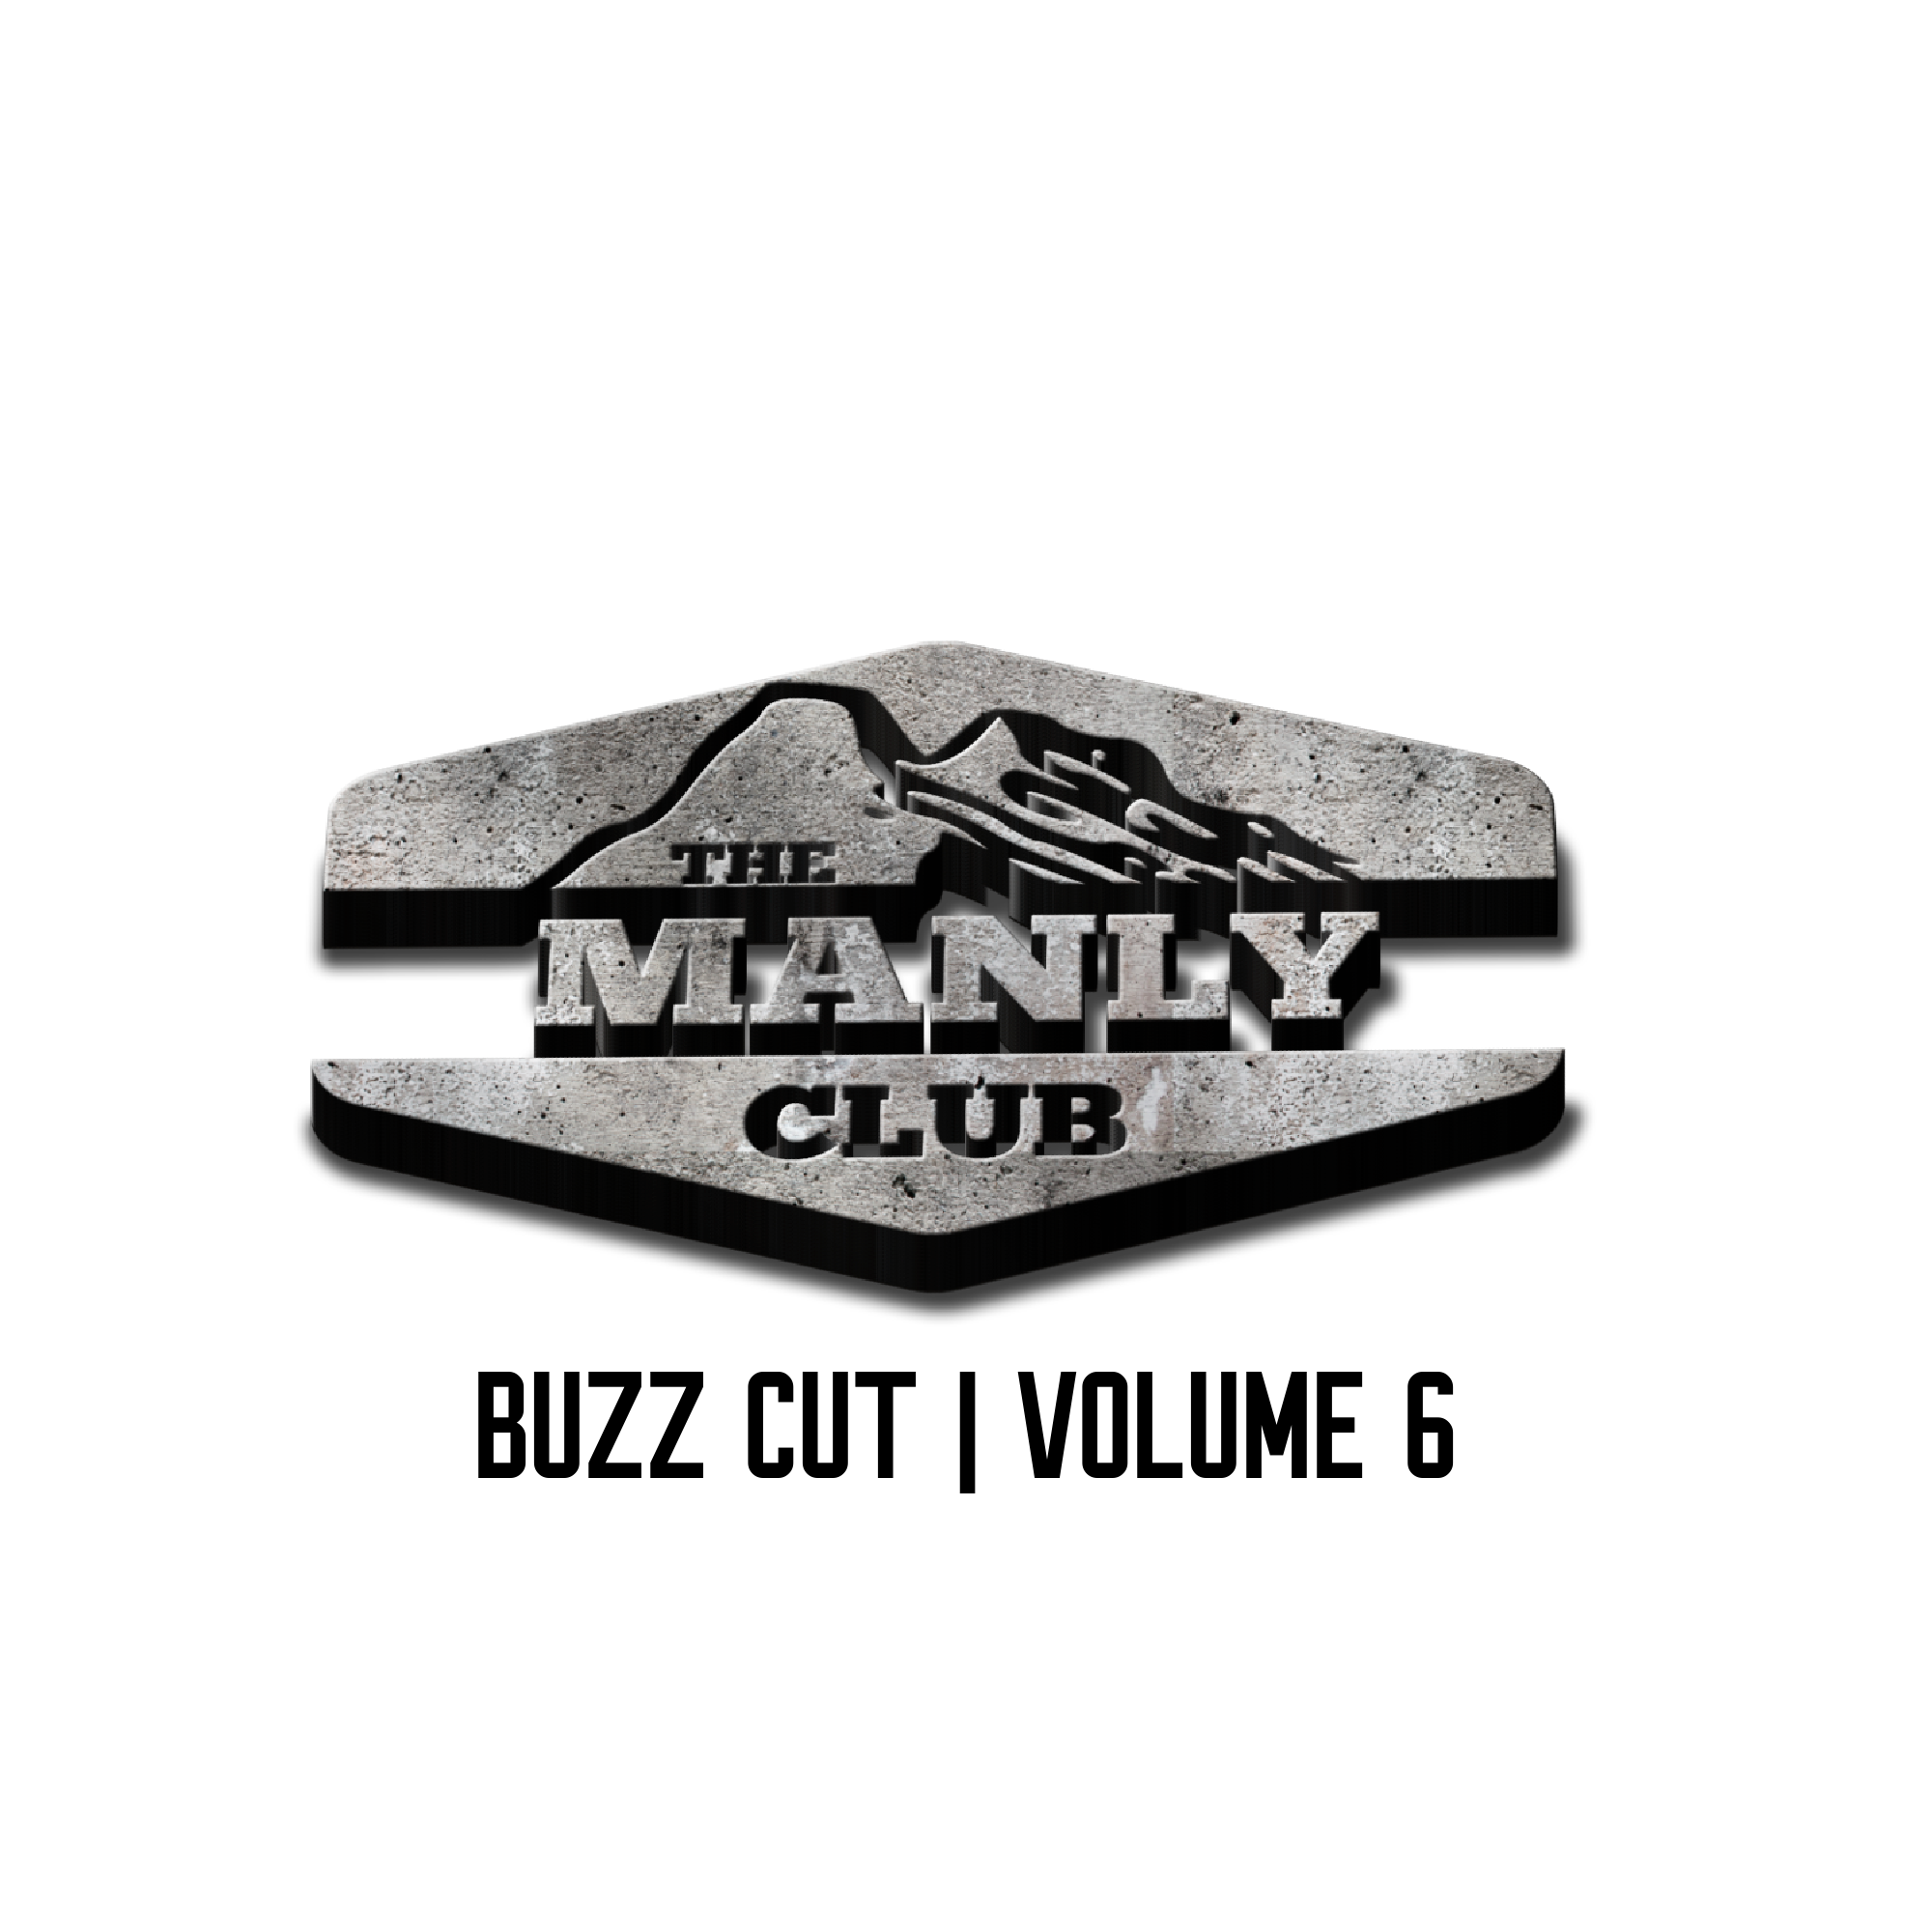 the manly club buzz cut volume 6